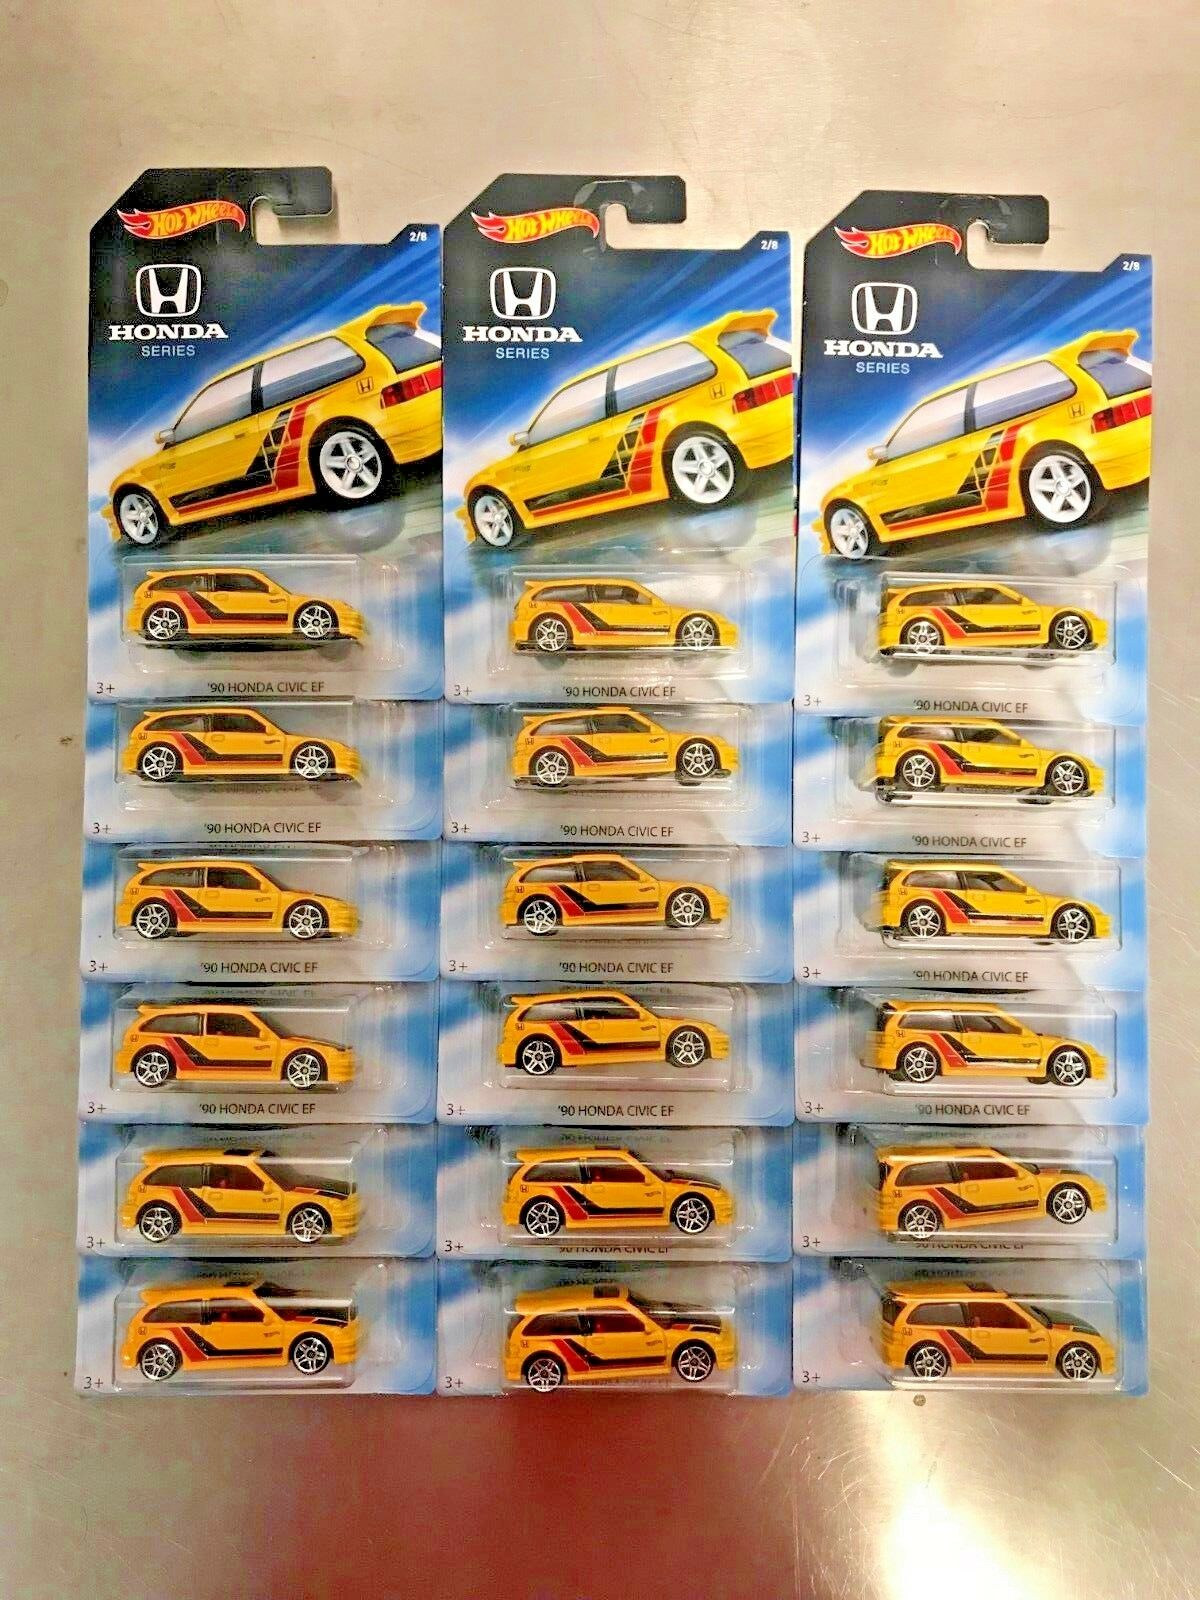 New HOT WHEELS Honda Series Set '90 Civic EF Lot of 18 Set 2018